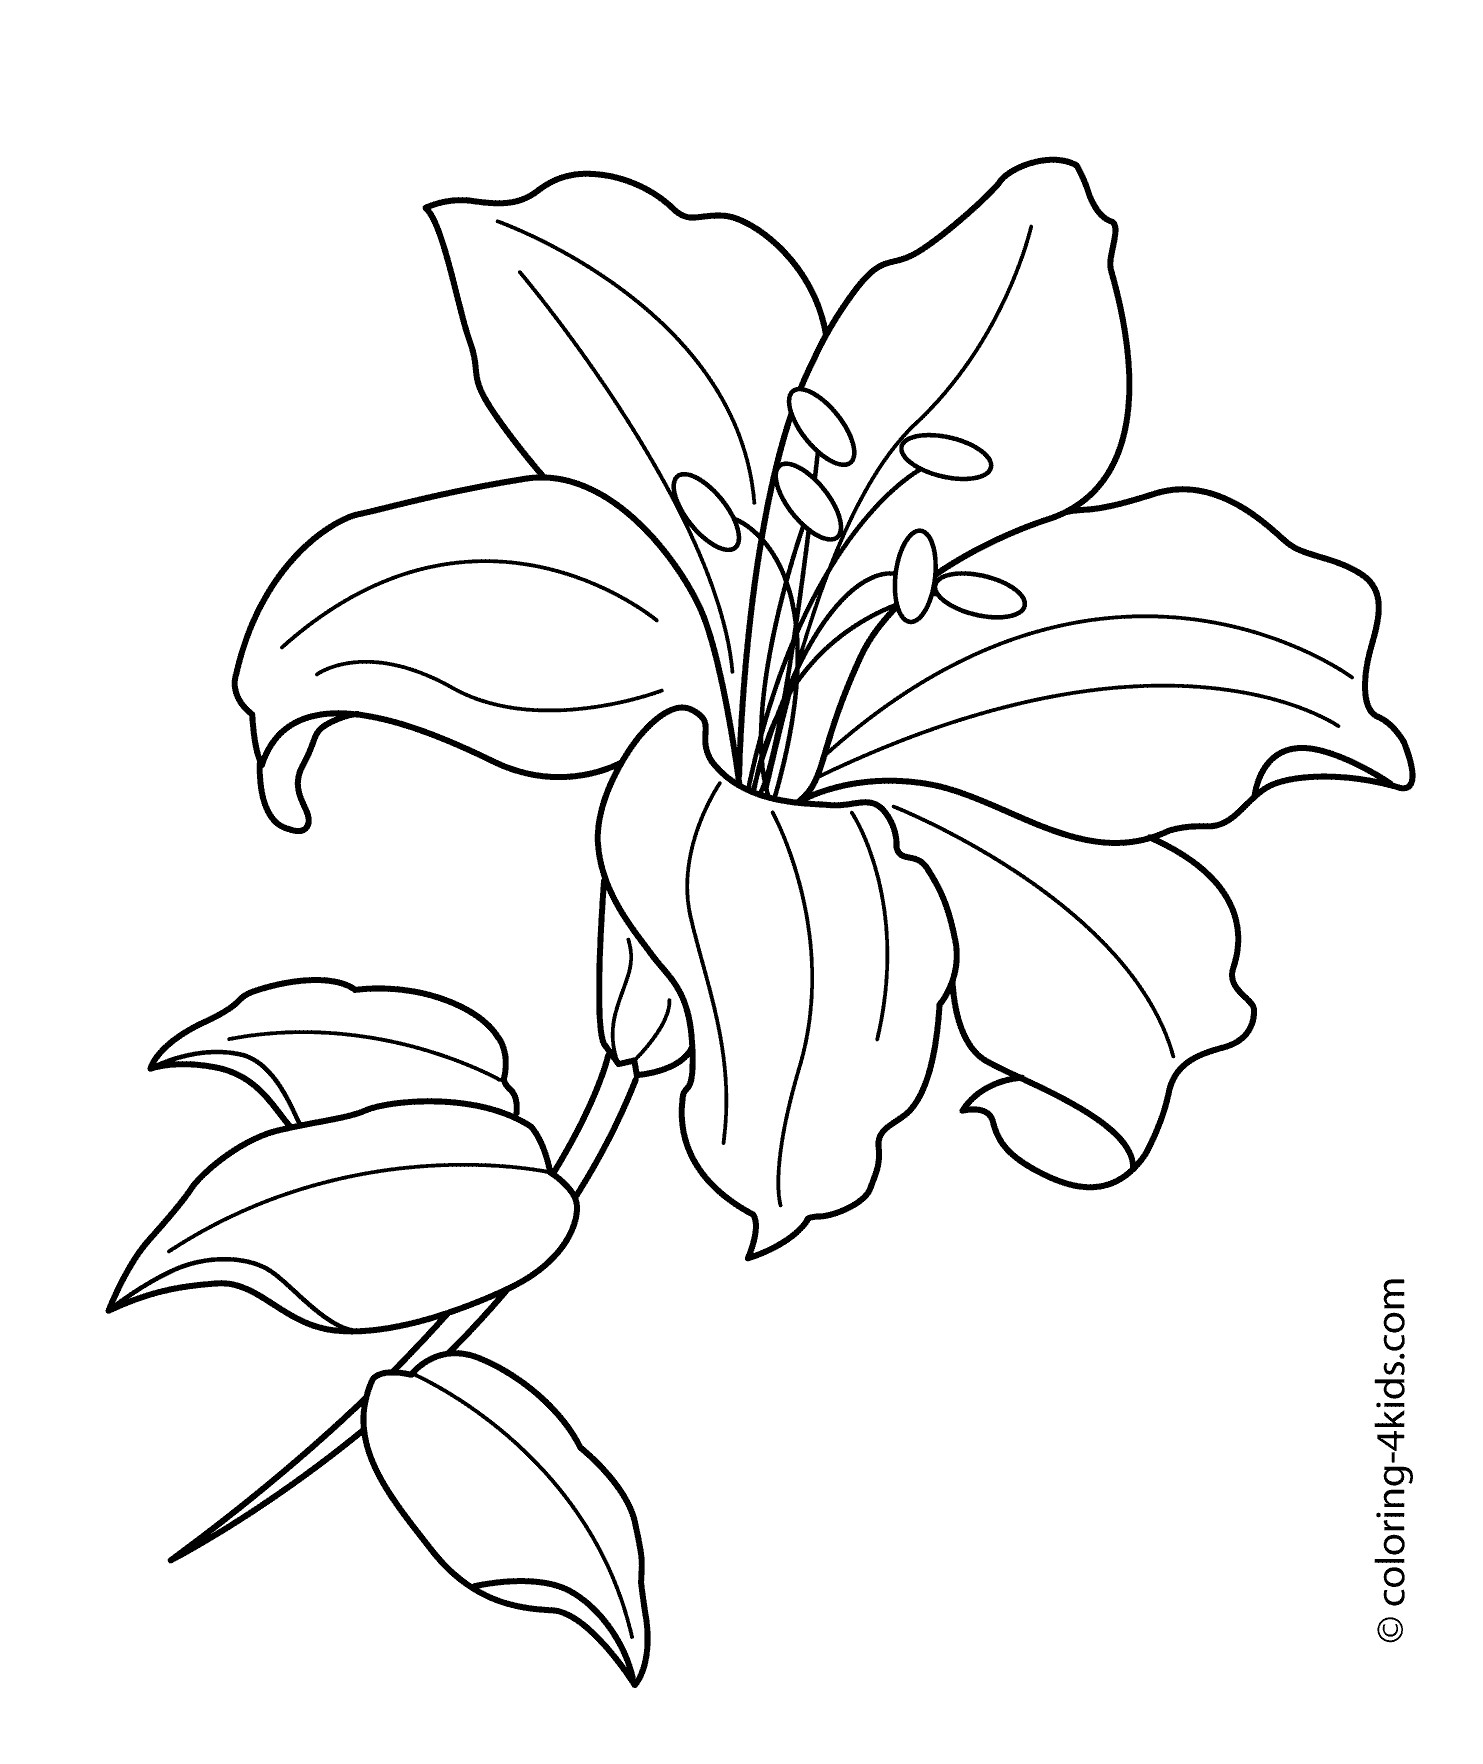 picture of flowers to print free printable flower coloring pages for kids cool2bkids to picture print of flowers